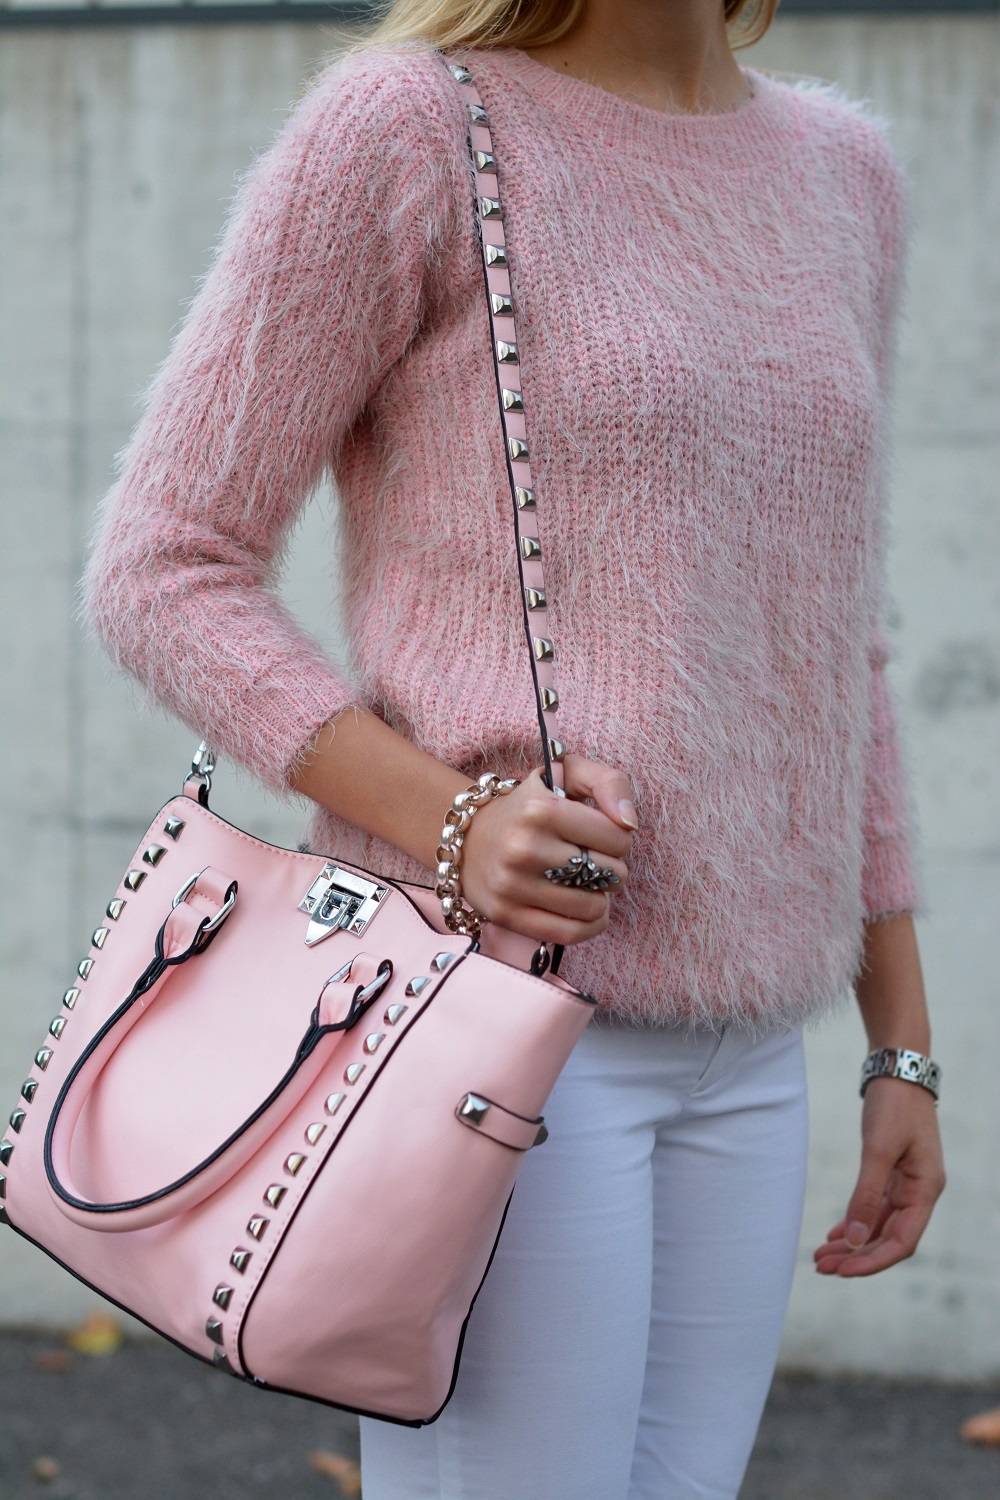 Pink fluffy sweater for fall - thevogueword.com